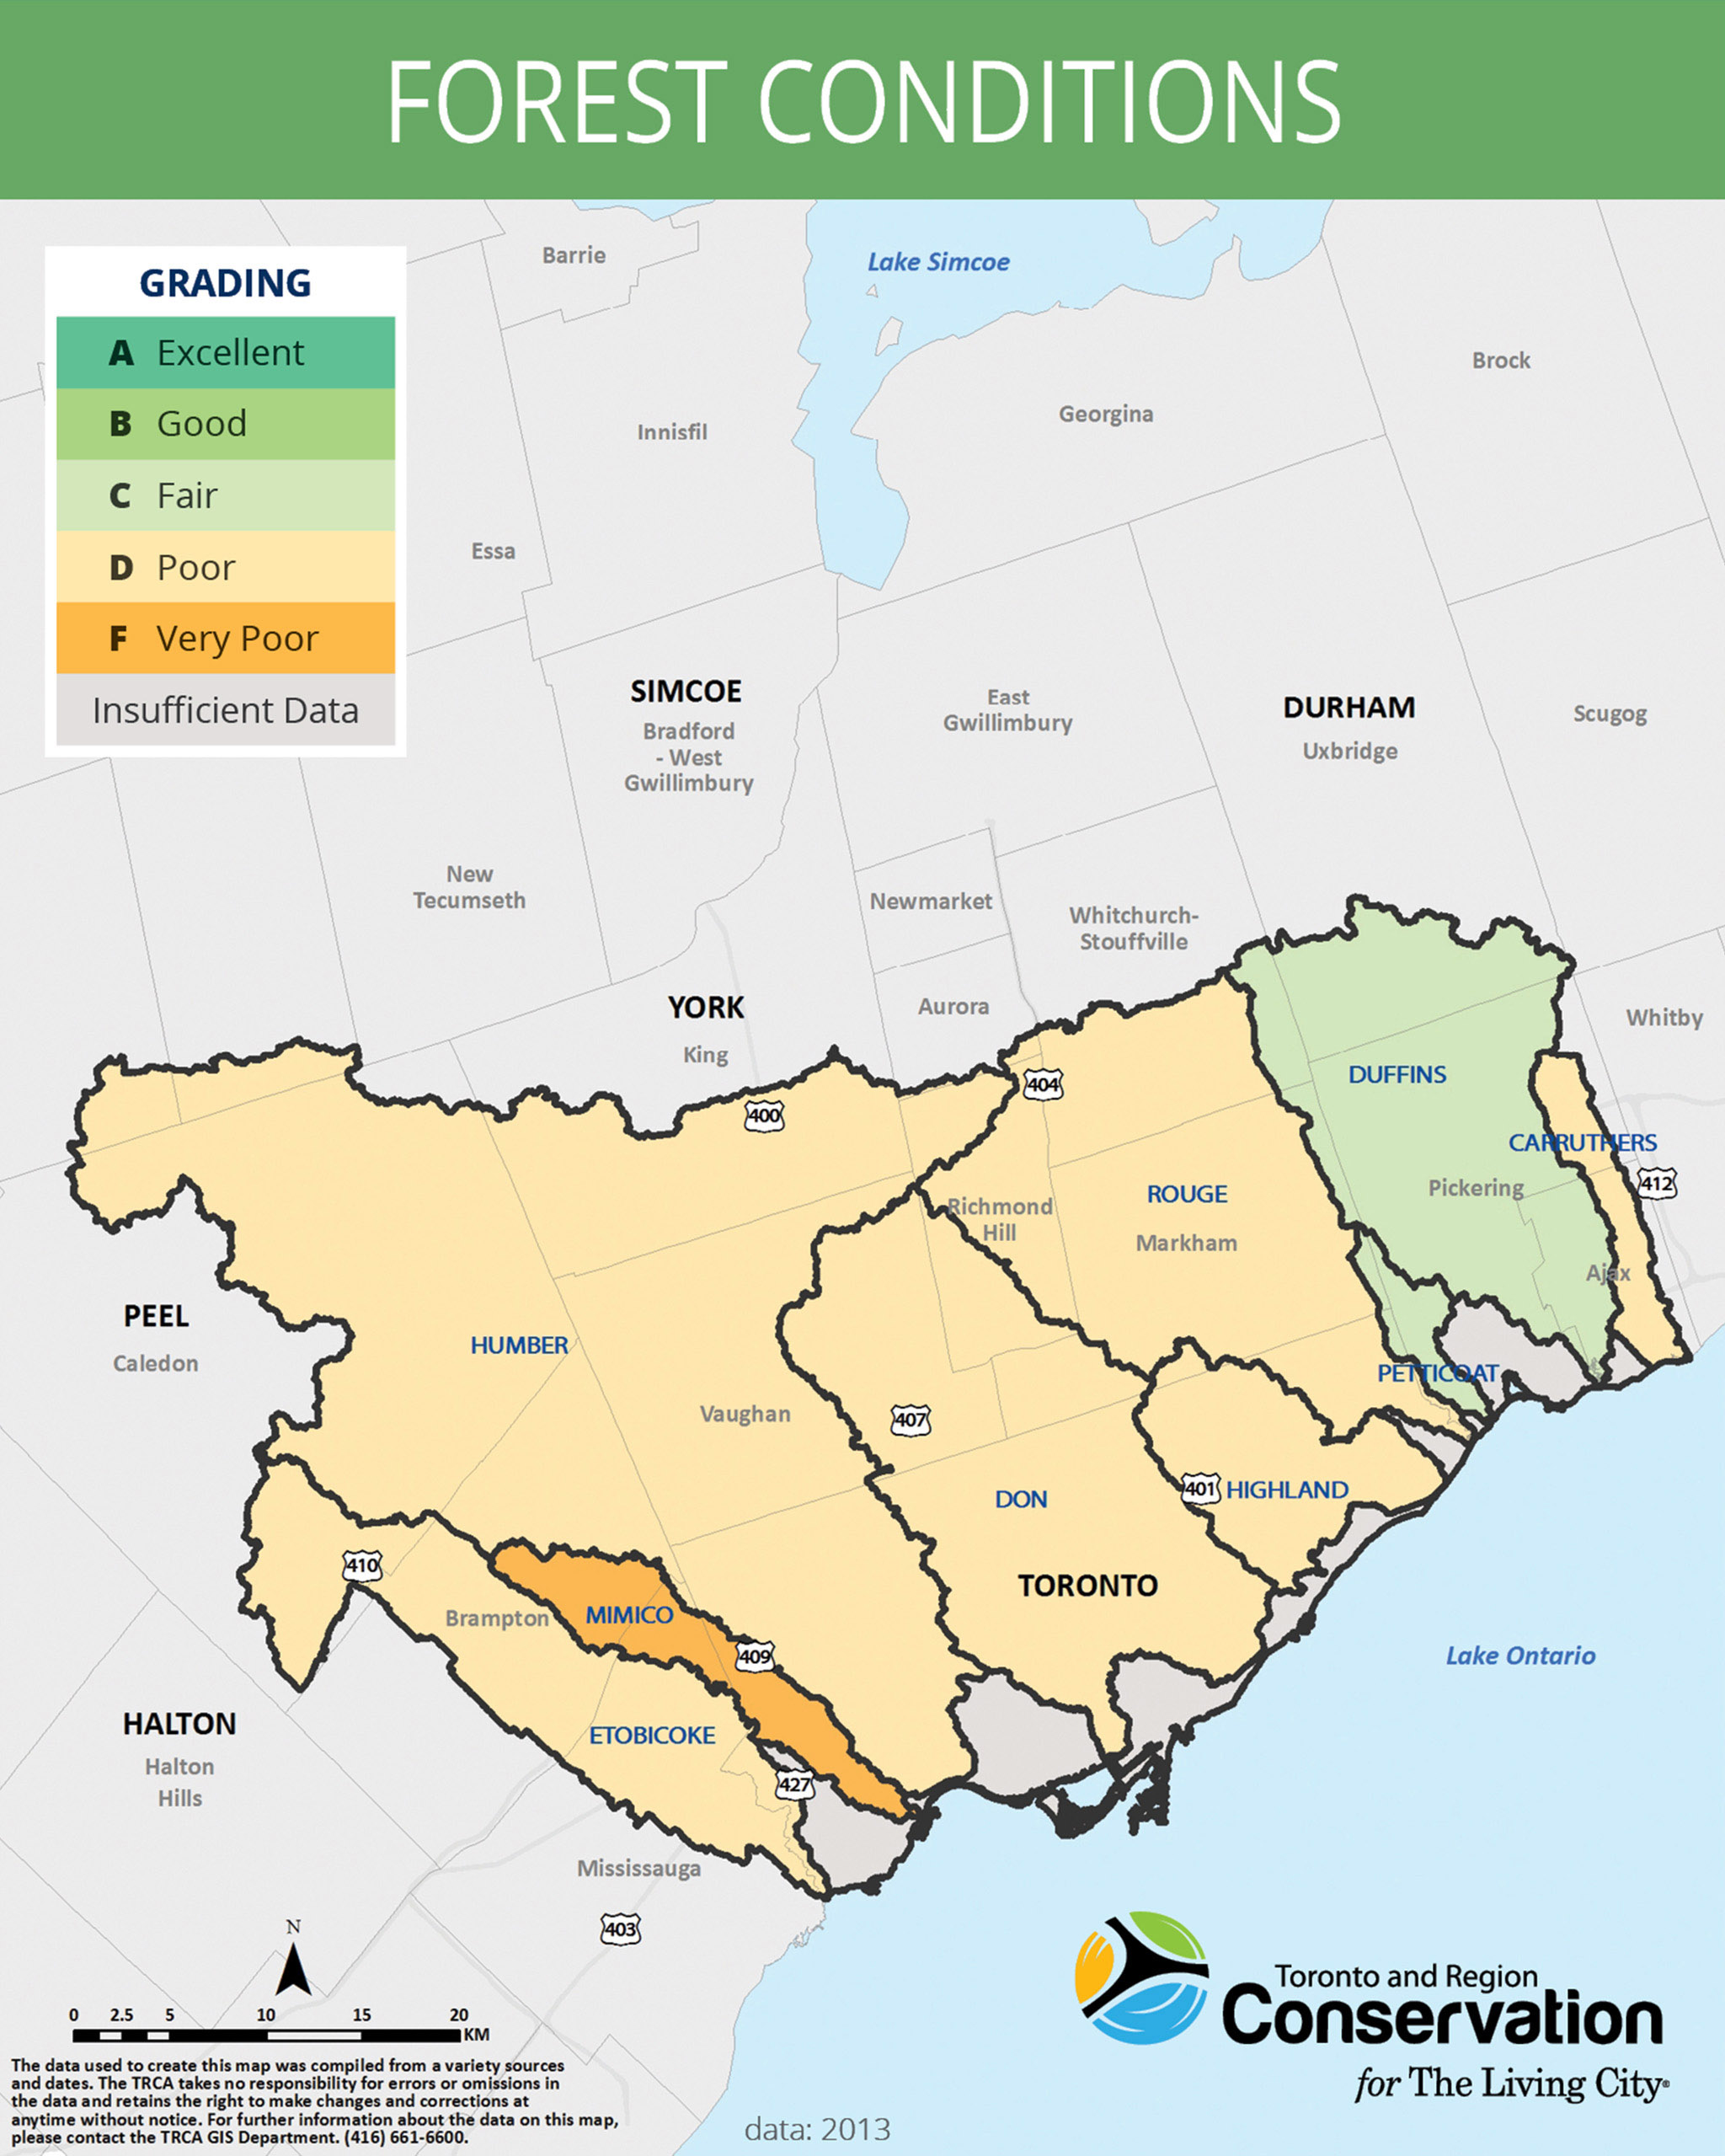 map of forest conditions in TRCA jurisdiction